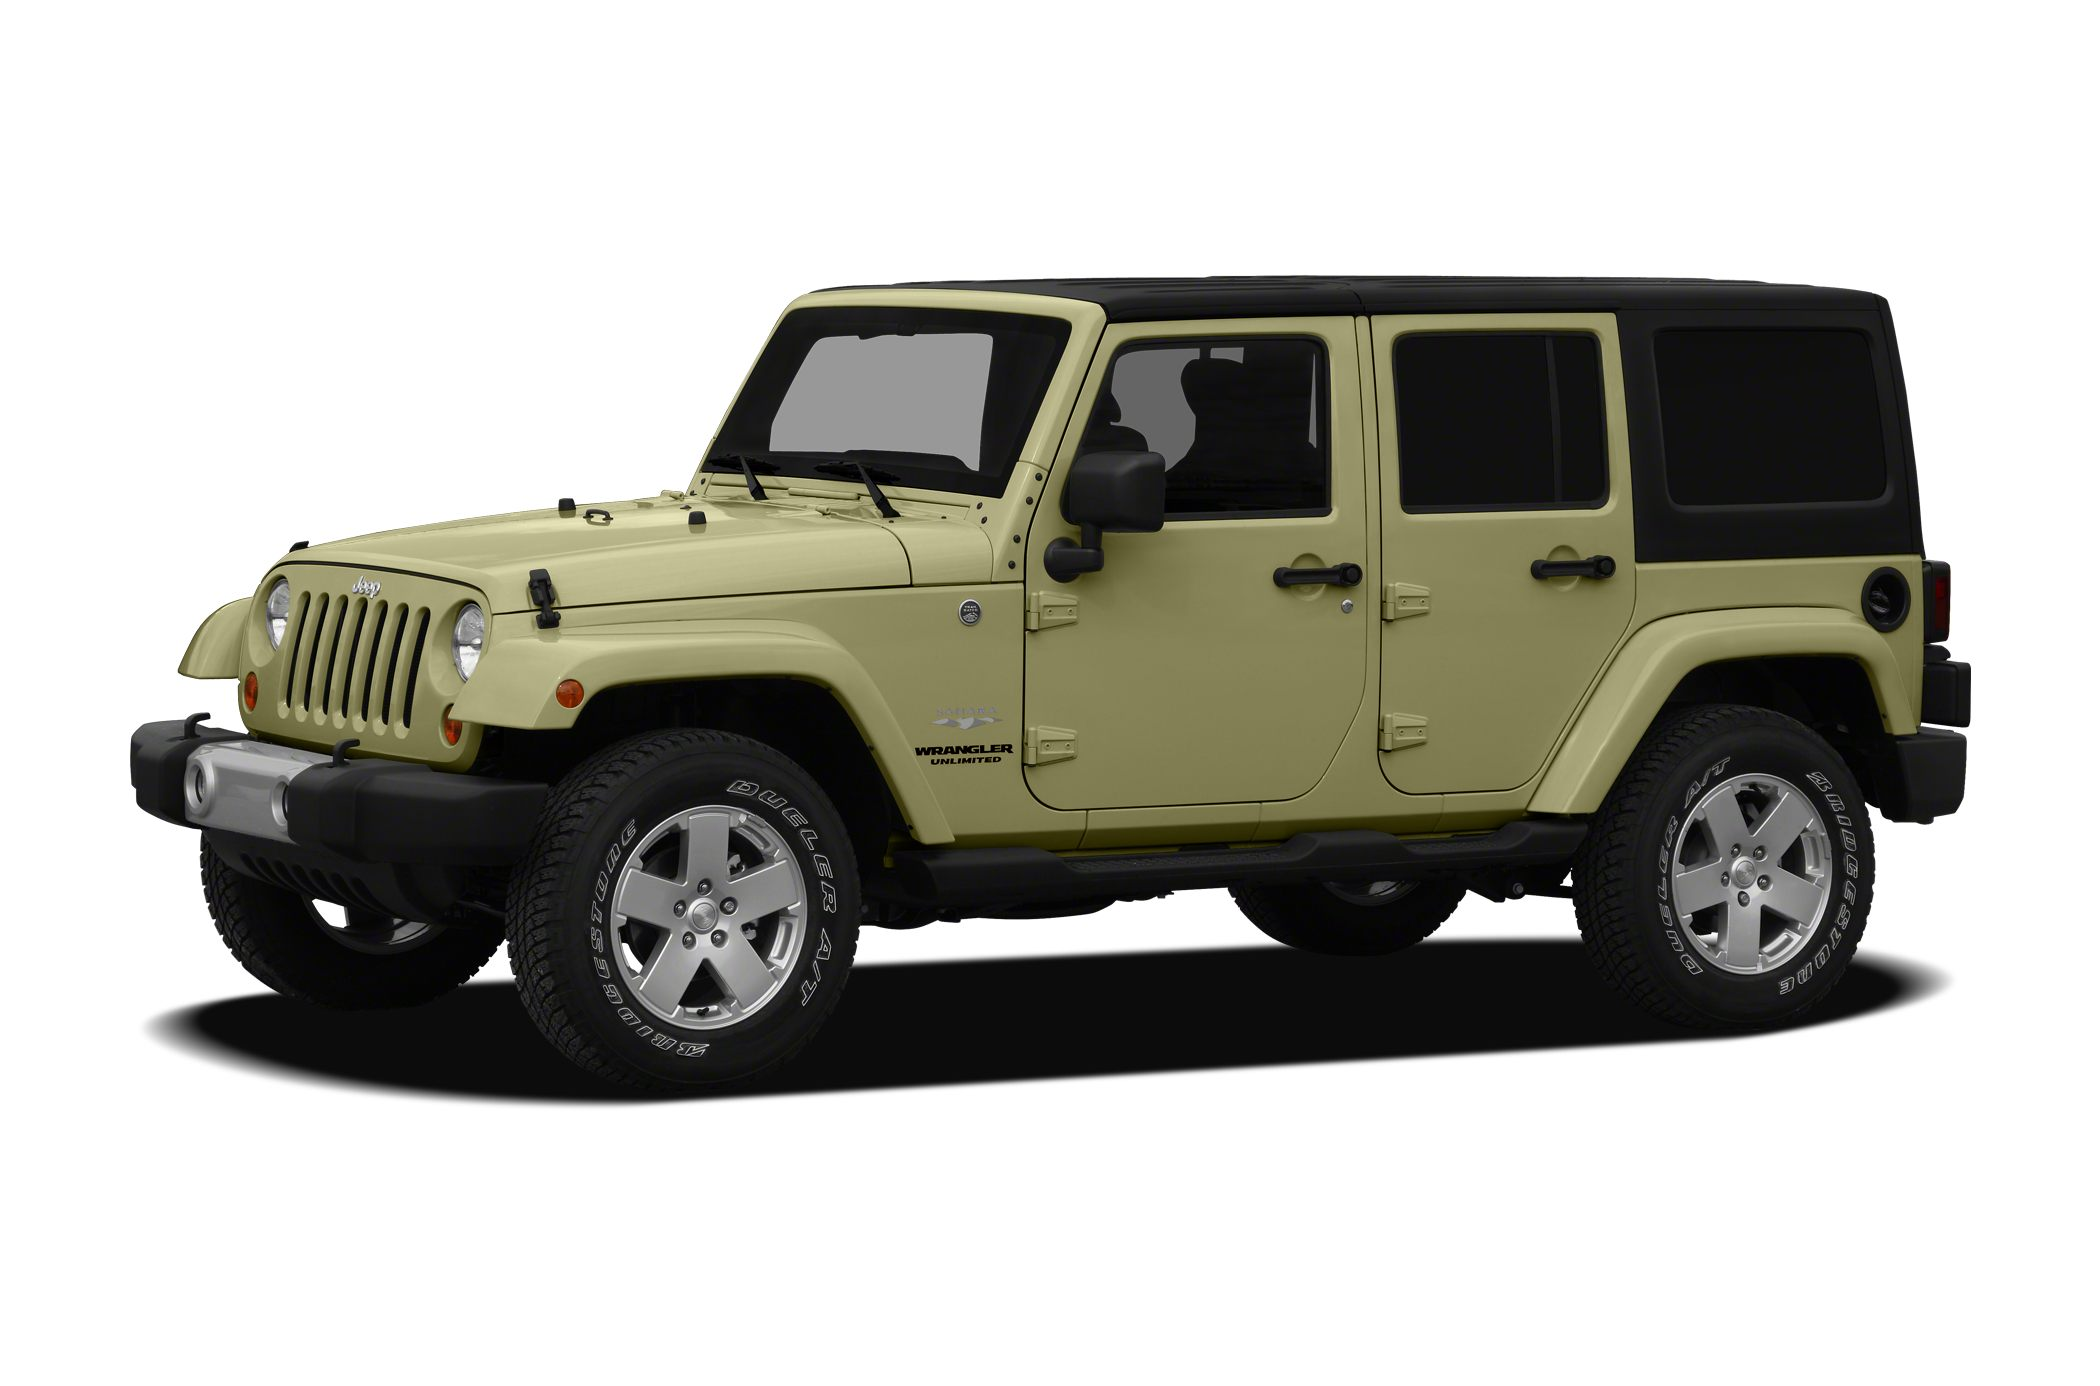 2012 Jeep Wrangler Unlimited Rubicon SUV for sale in Aurora for $36,997 with 18,314 miles.